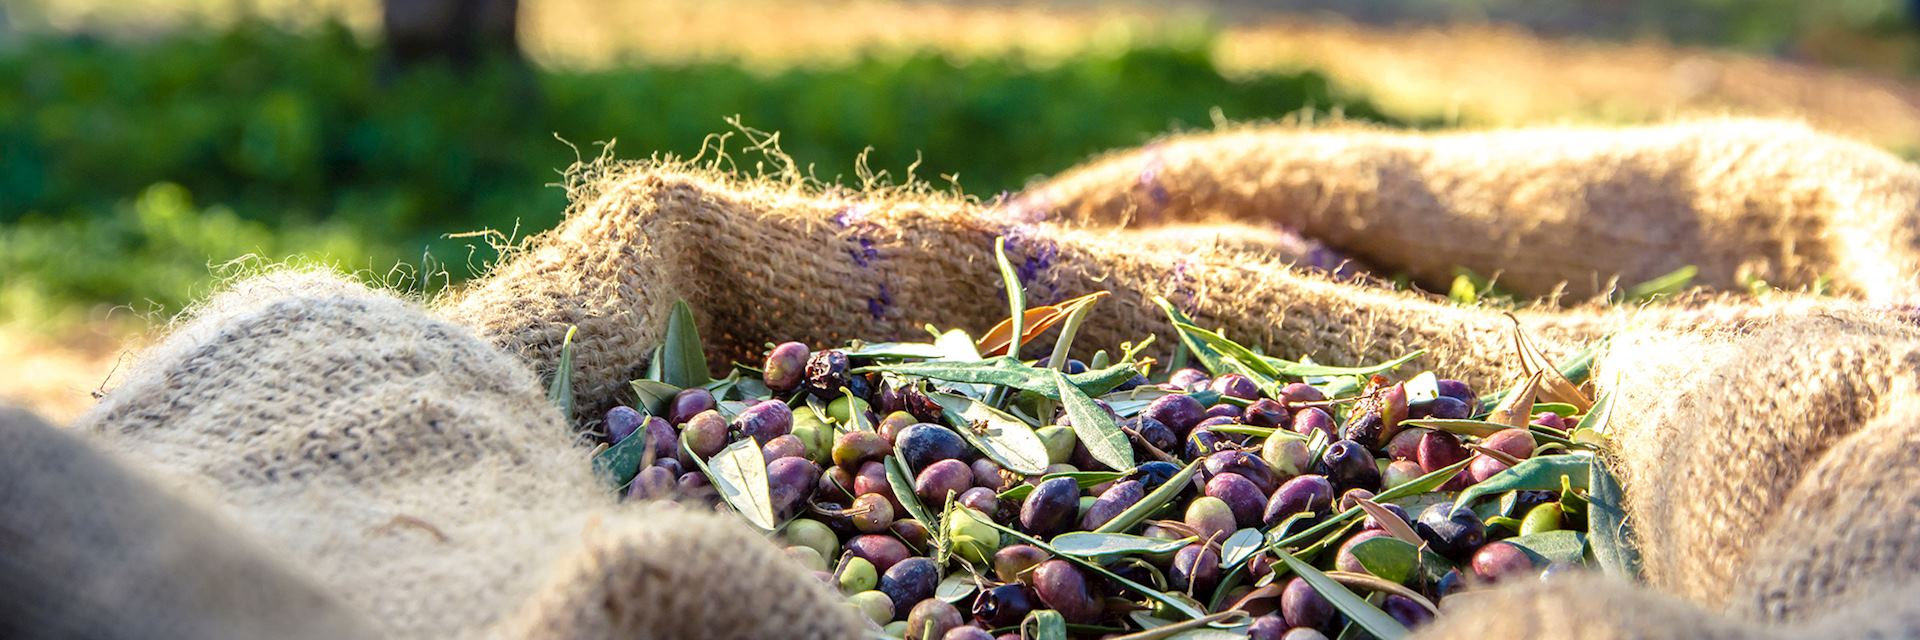 Harvested fresh olives